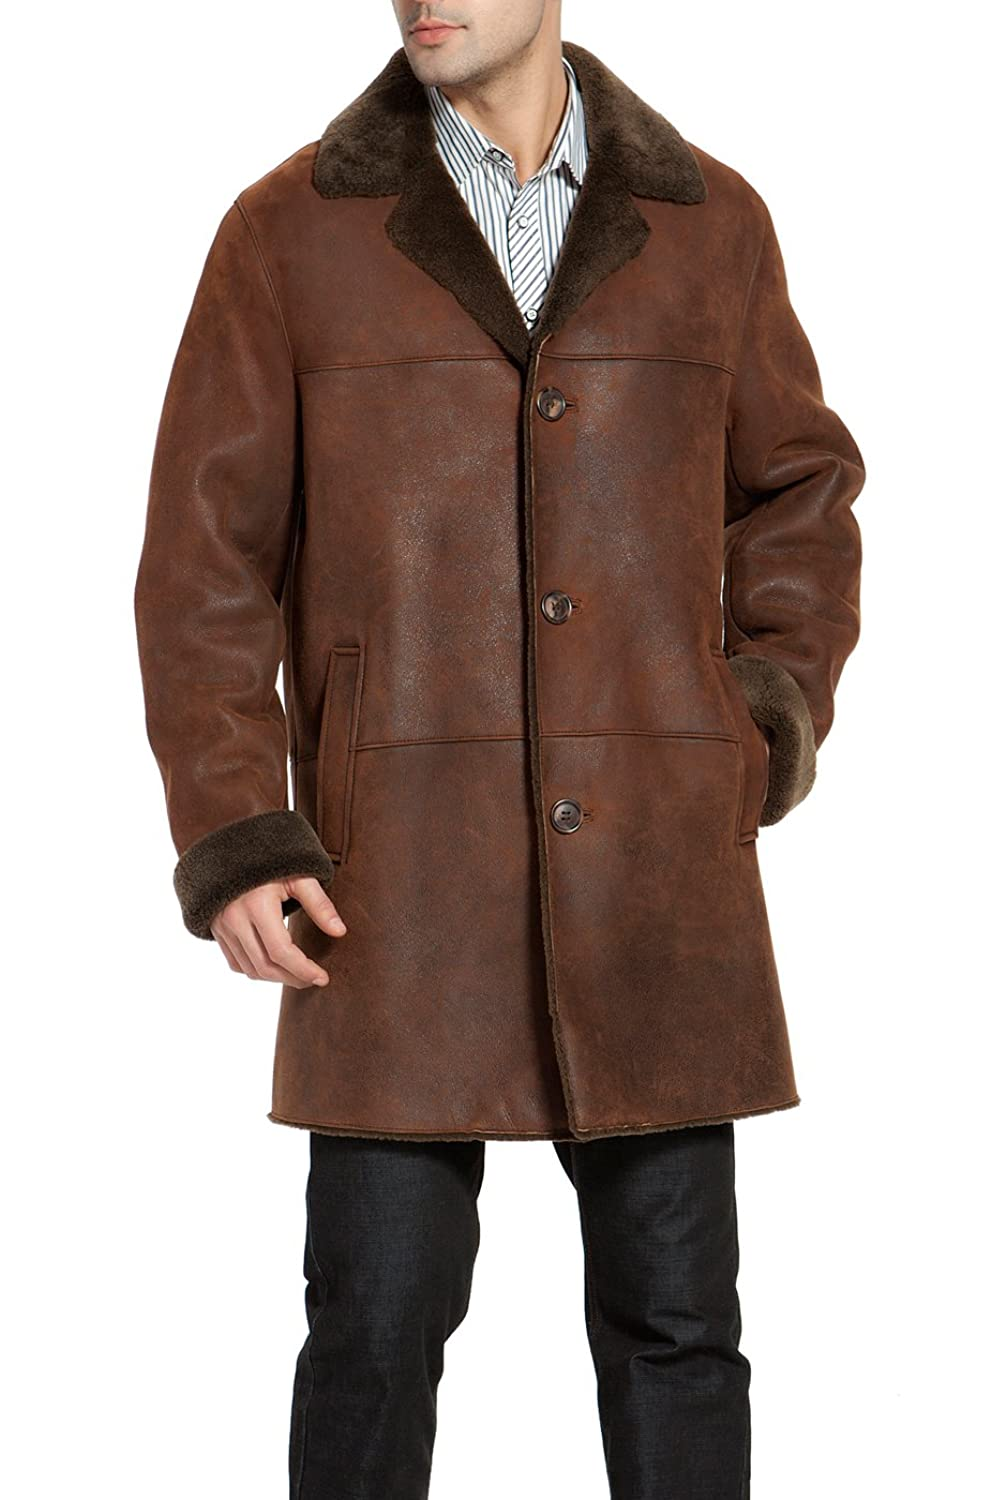 BGSD Men's Himalayan Sheepskin Shearling Long Coat